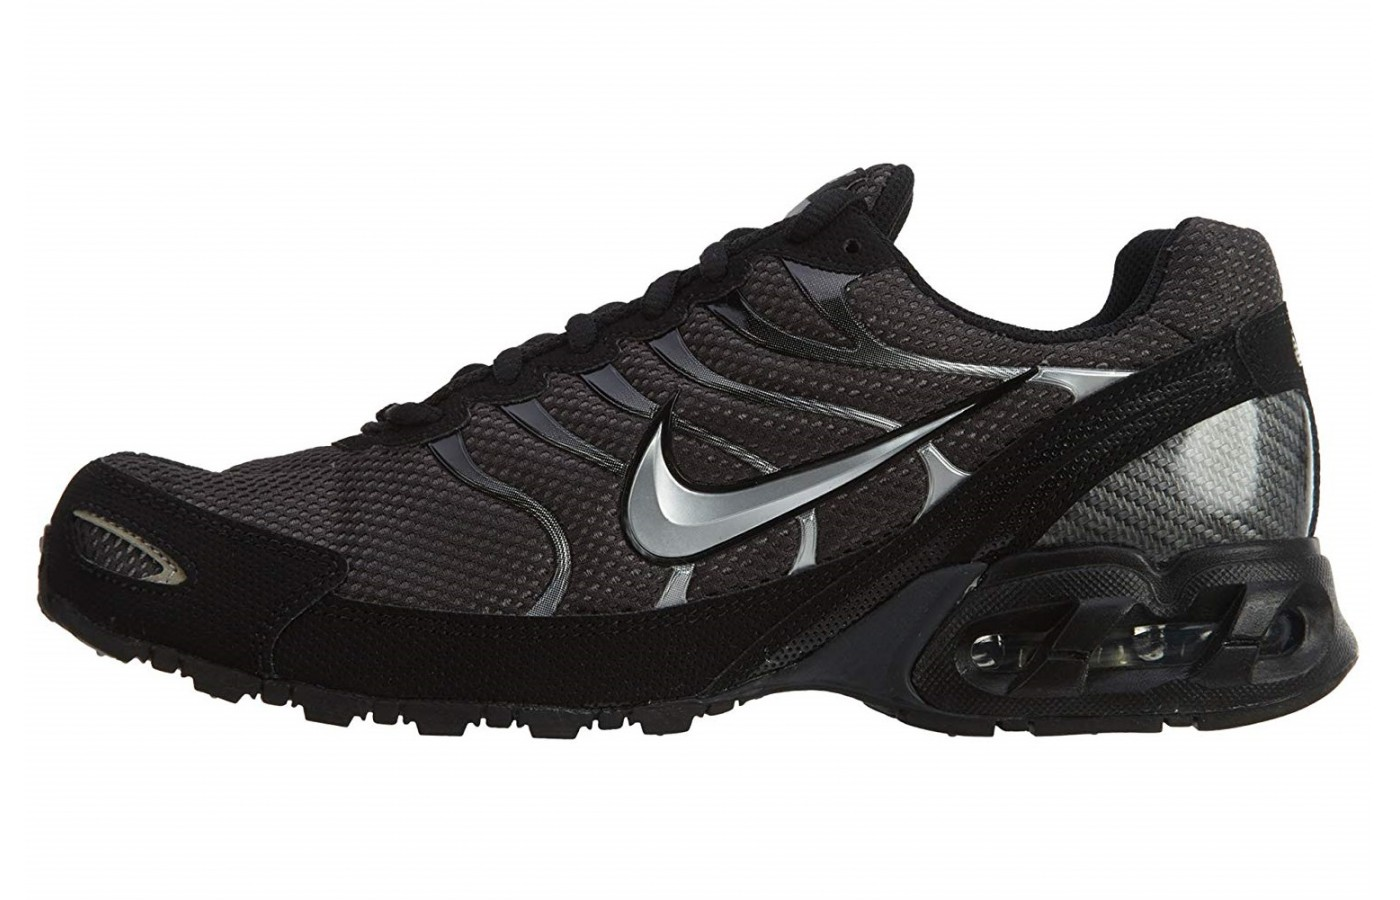 promo code daccf c0412 ... Nike-Air-Max-Torch-4-Primary-Side ...